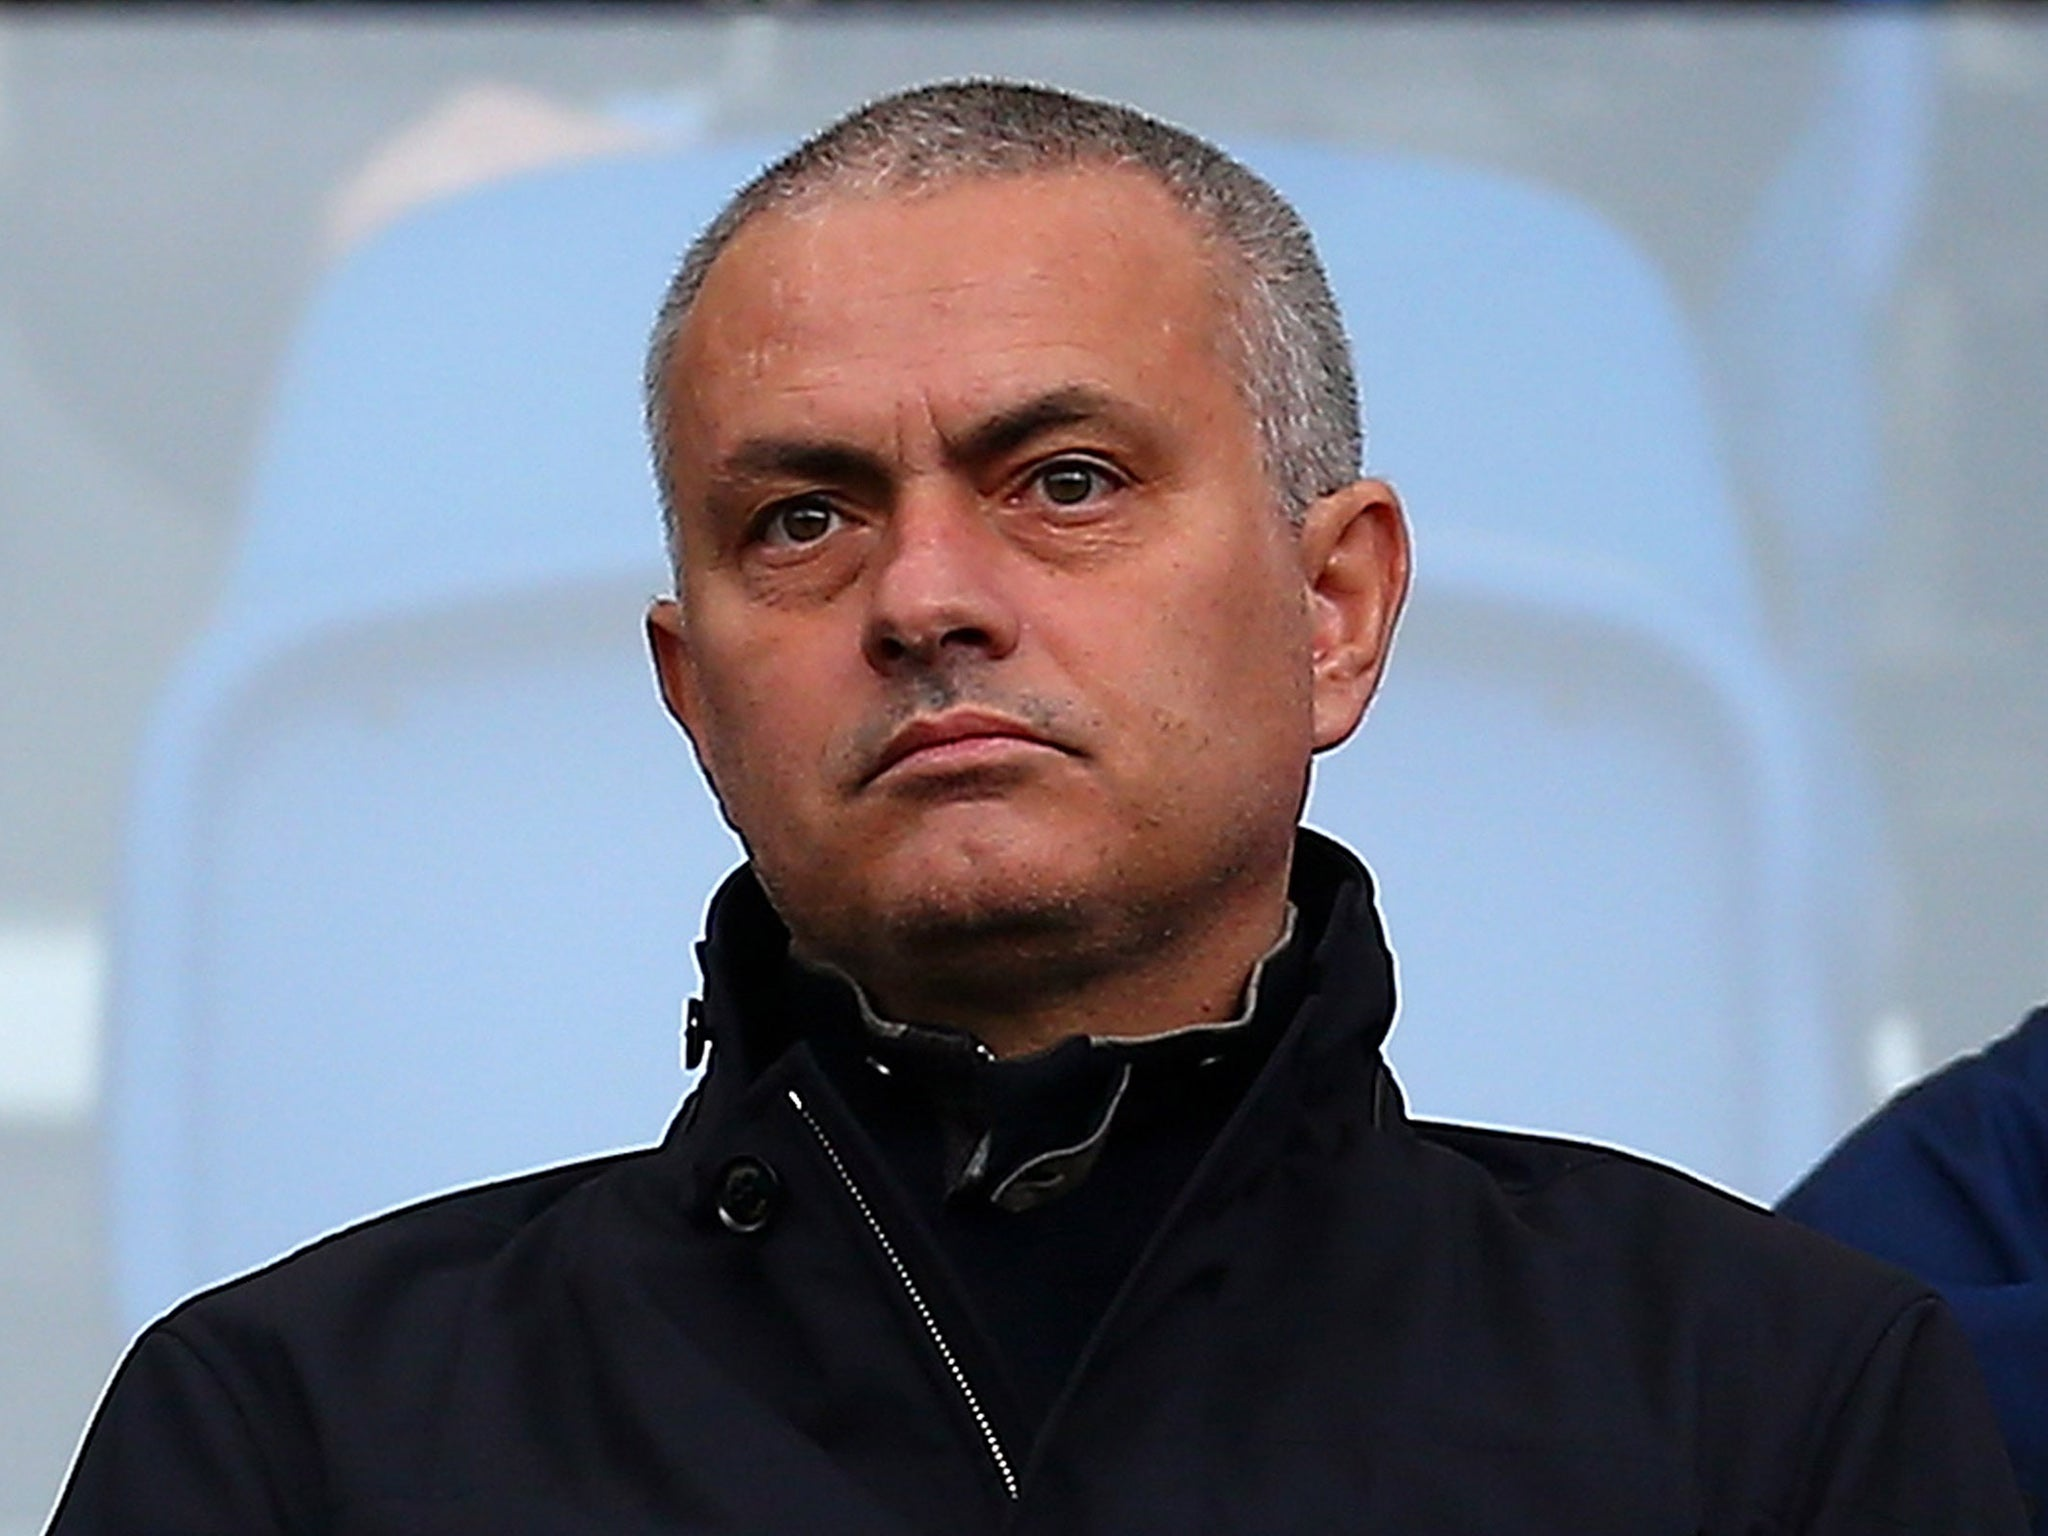 Jose Mourinho To Manchester United 15million Per Year